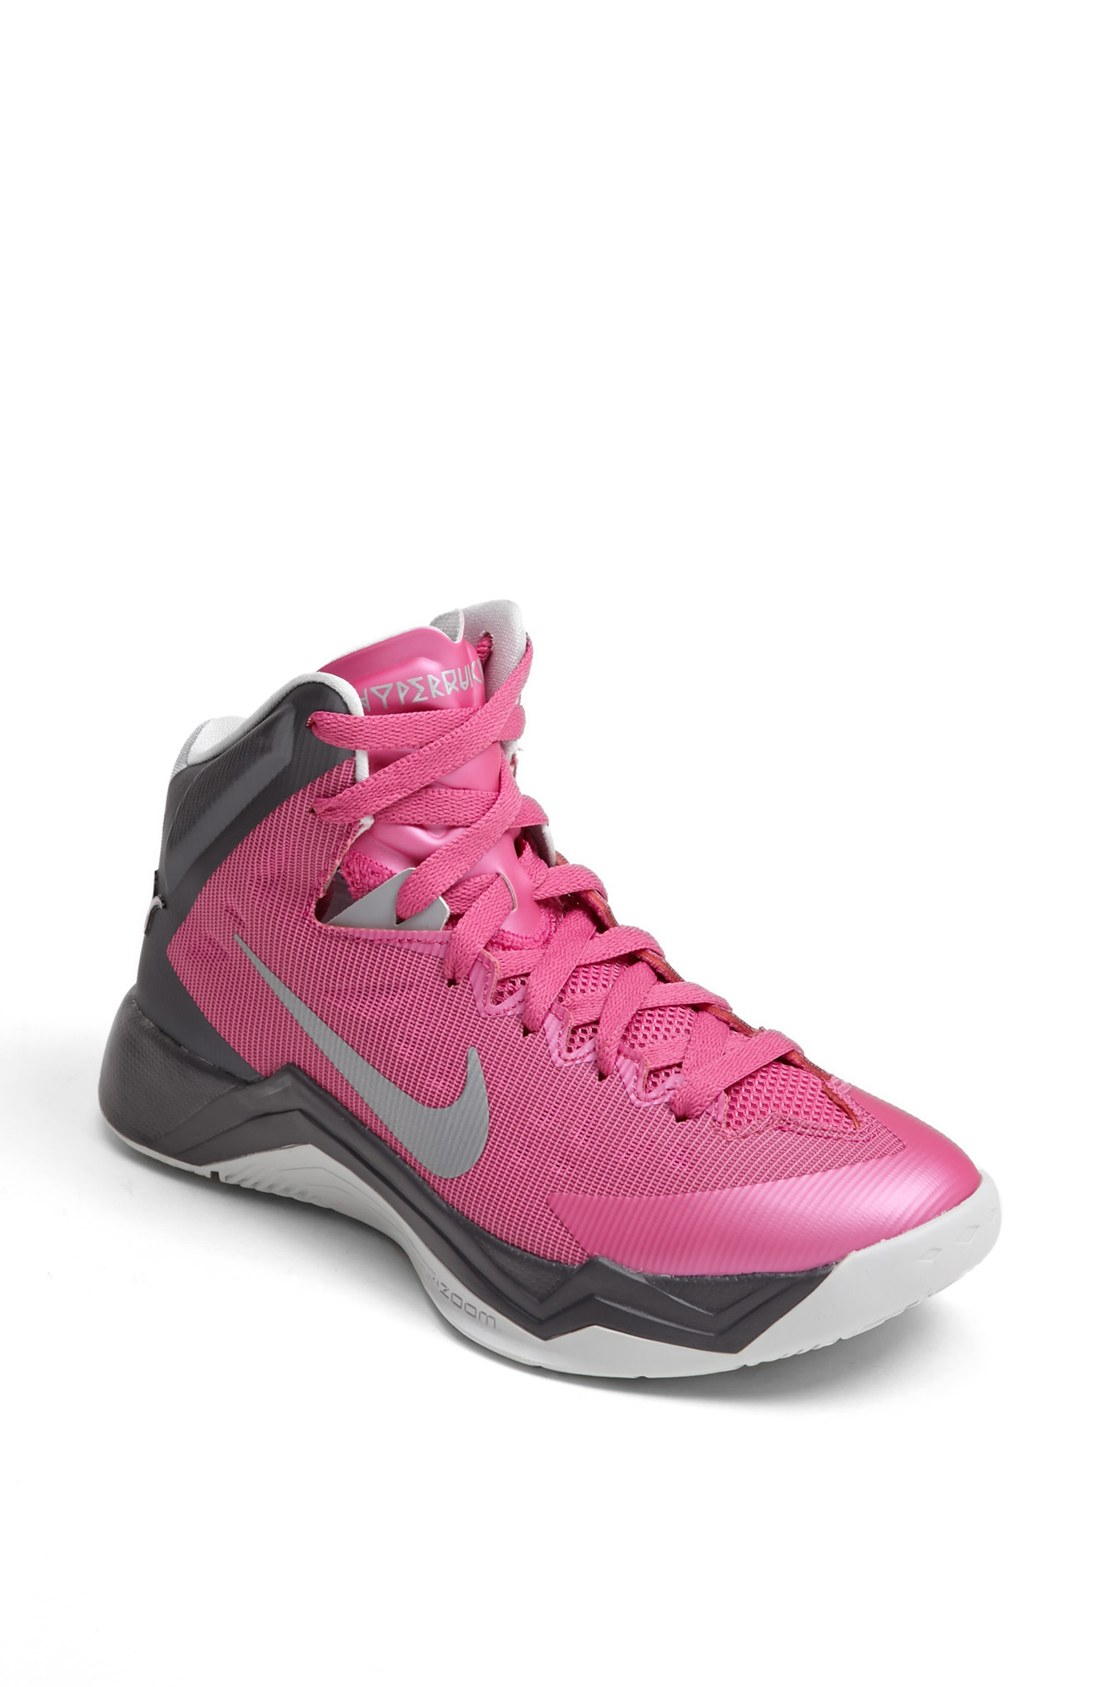 nike hyper quickness basketball shoe in pink lyst